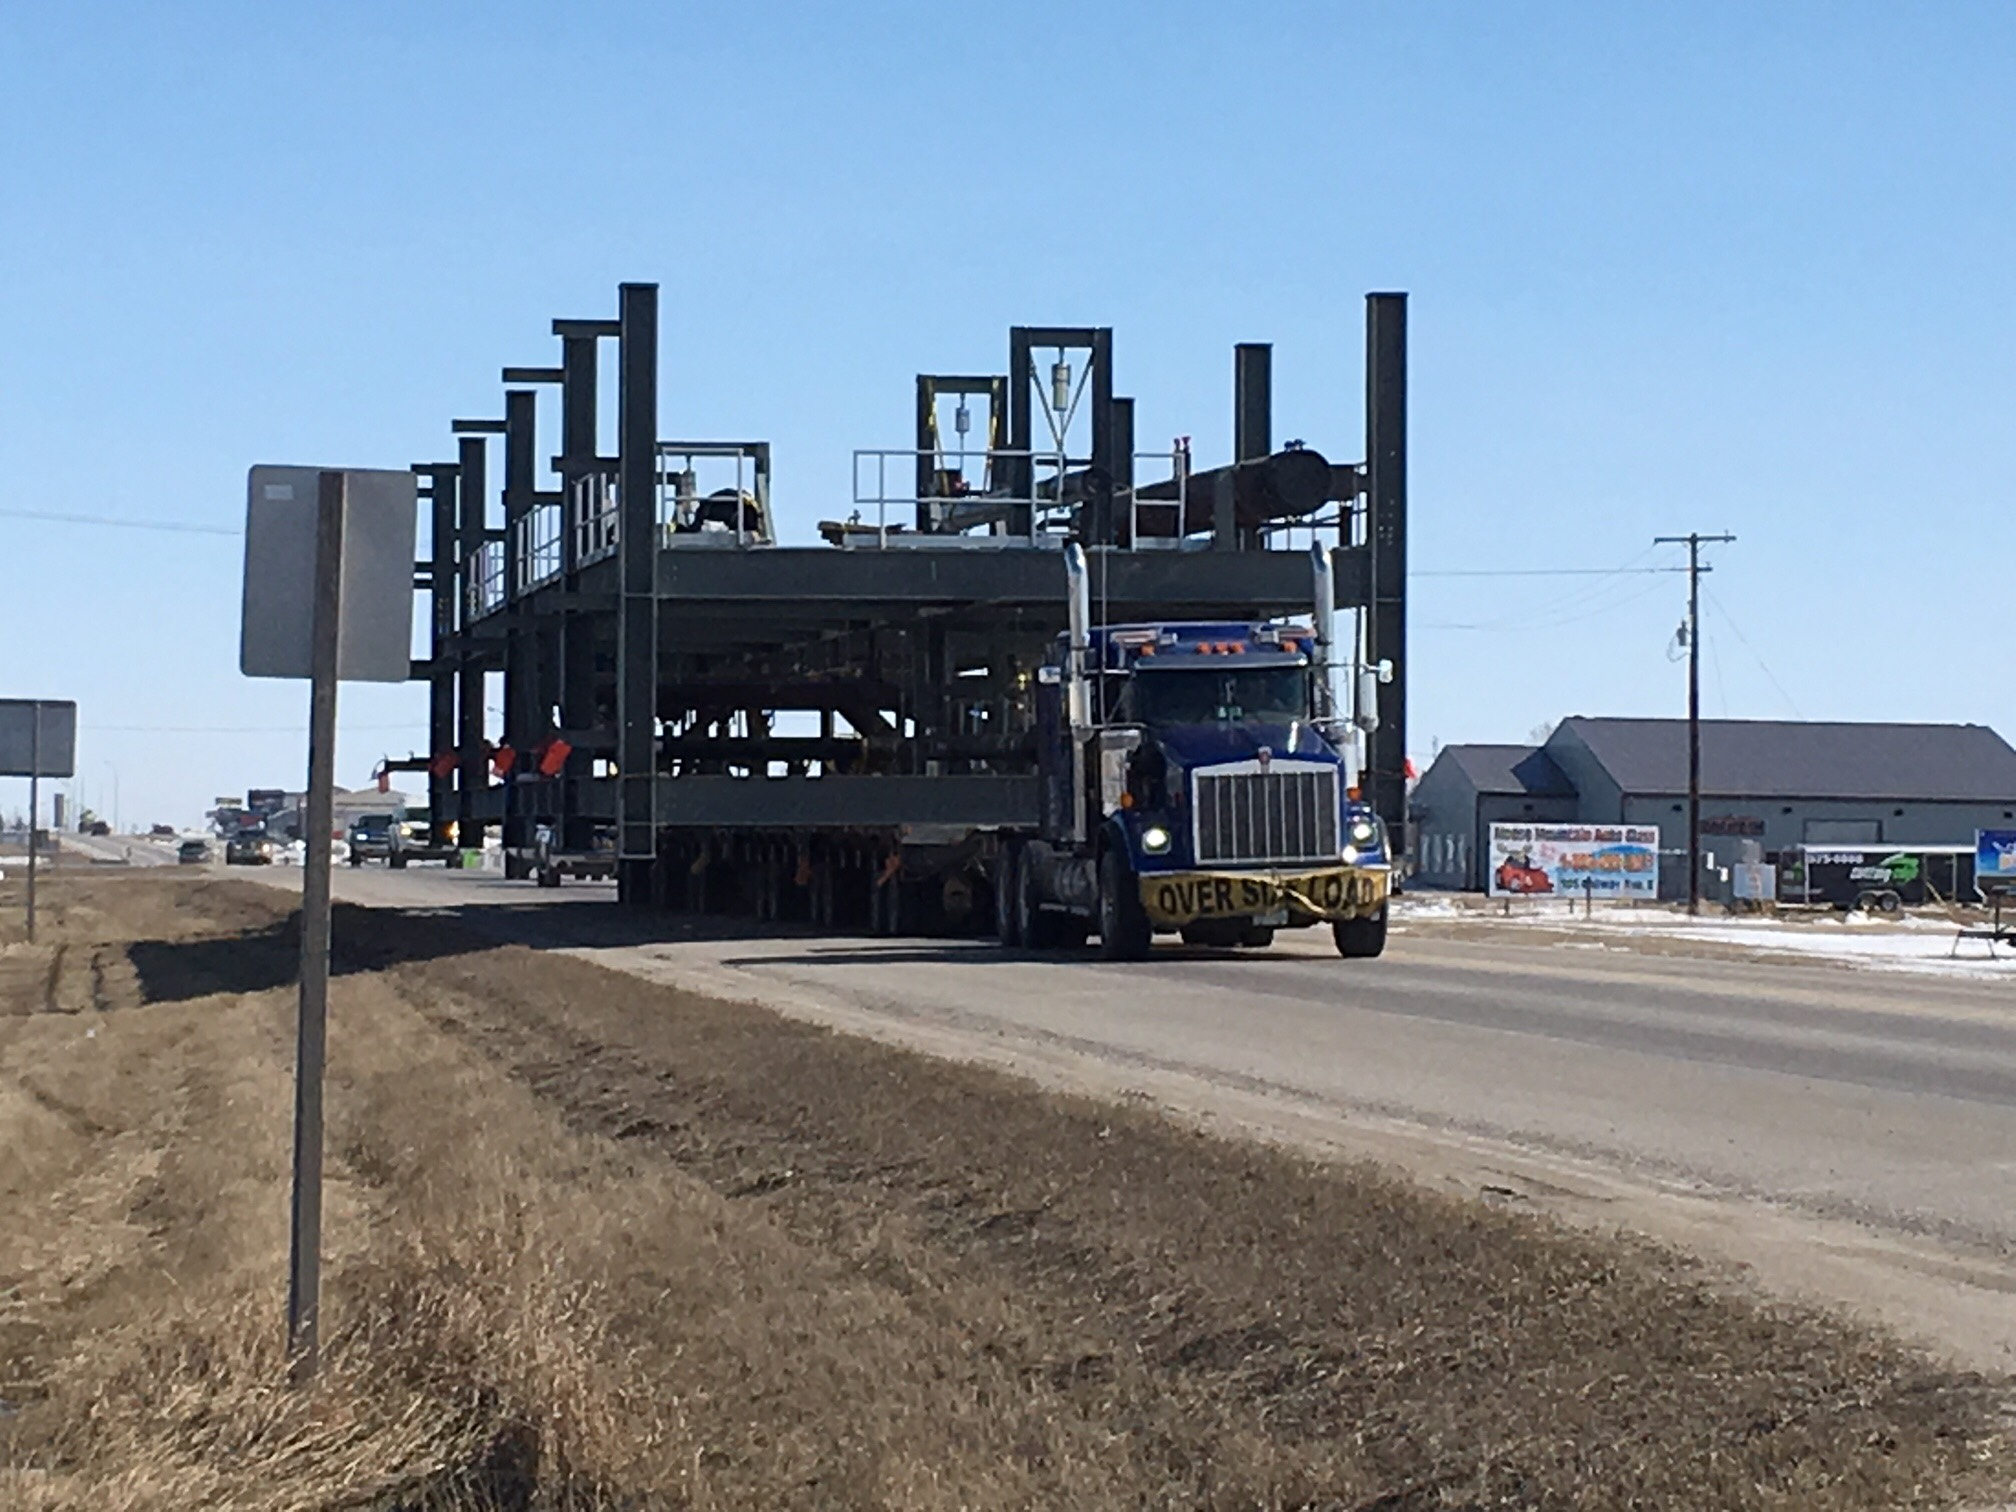 Large Transport Continues its Slow Move in Southern Saskatchewan